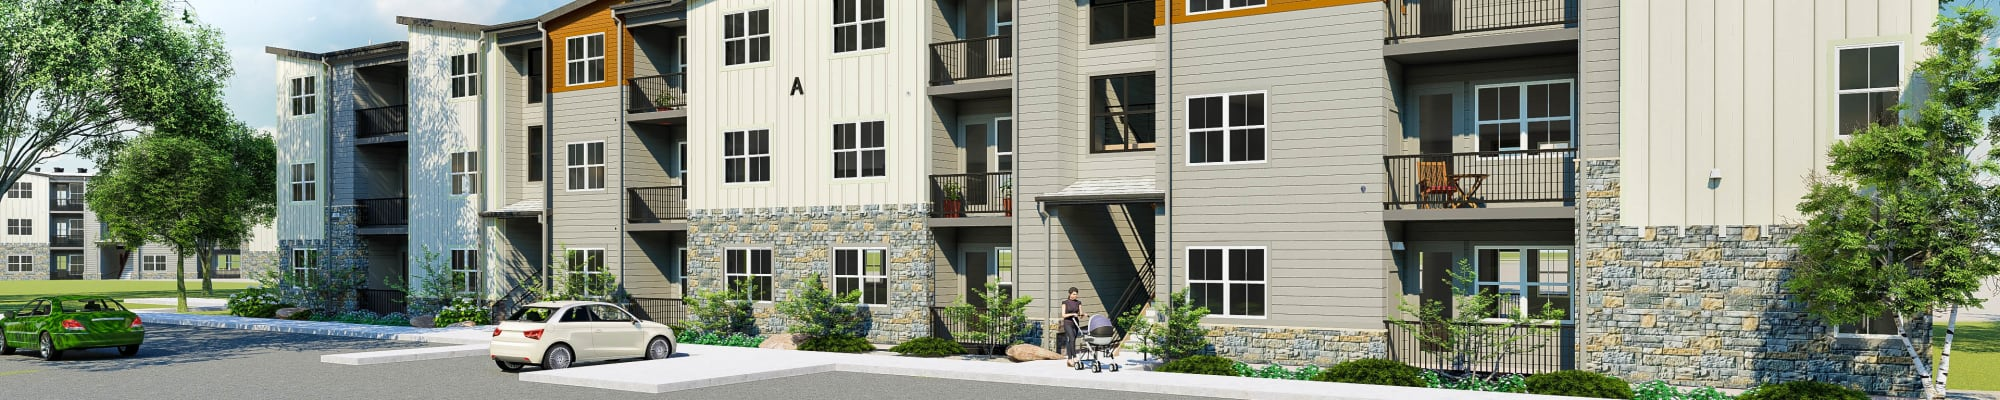 Photo gallery at Fields on 15th Apartment Homes in Longmont, Colorado